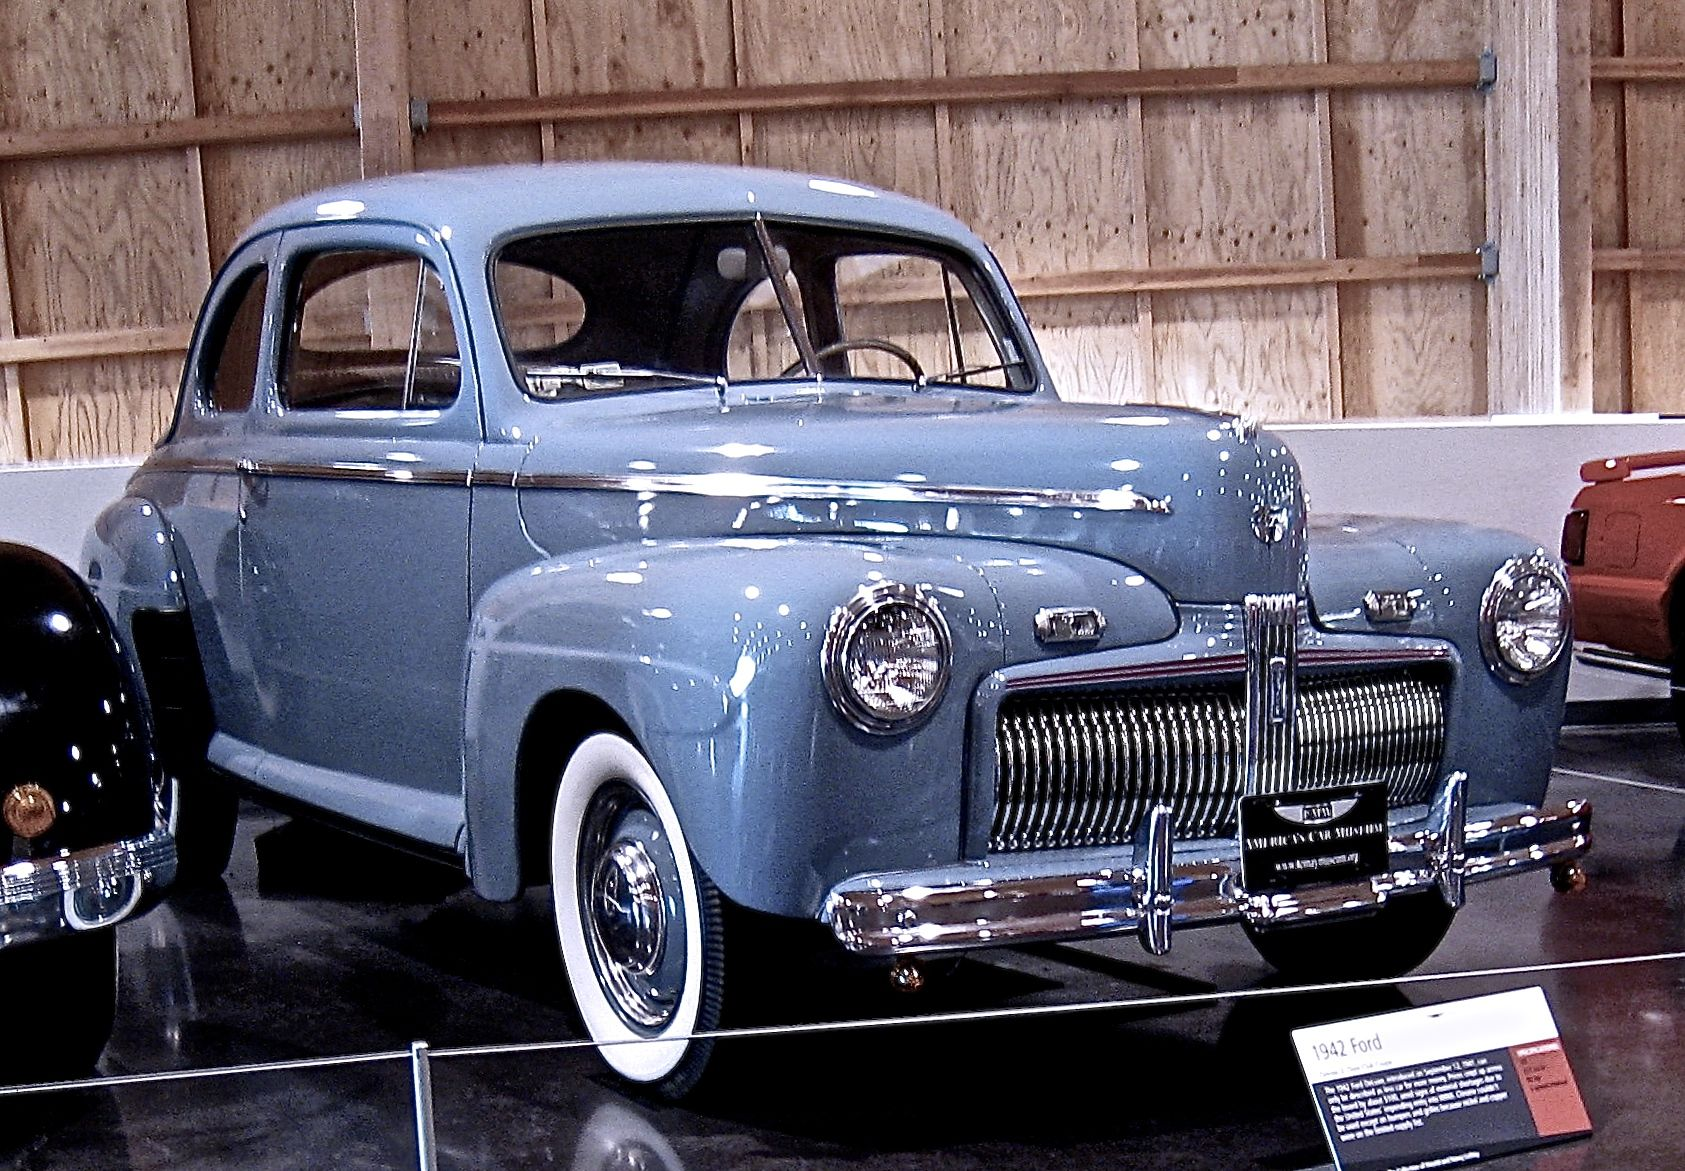 1942 Ford Super Deluxe Sedan Coupe An Outstanding Example On Display At The Lemay Automobile Museum Ford Classic Cars Cool Old Cars Classic Cars Vintage